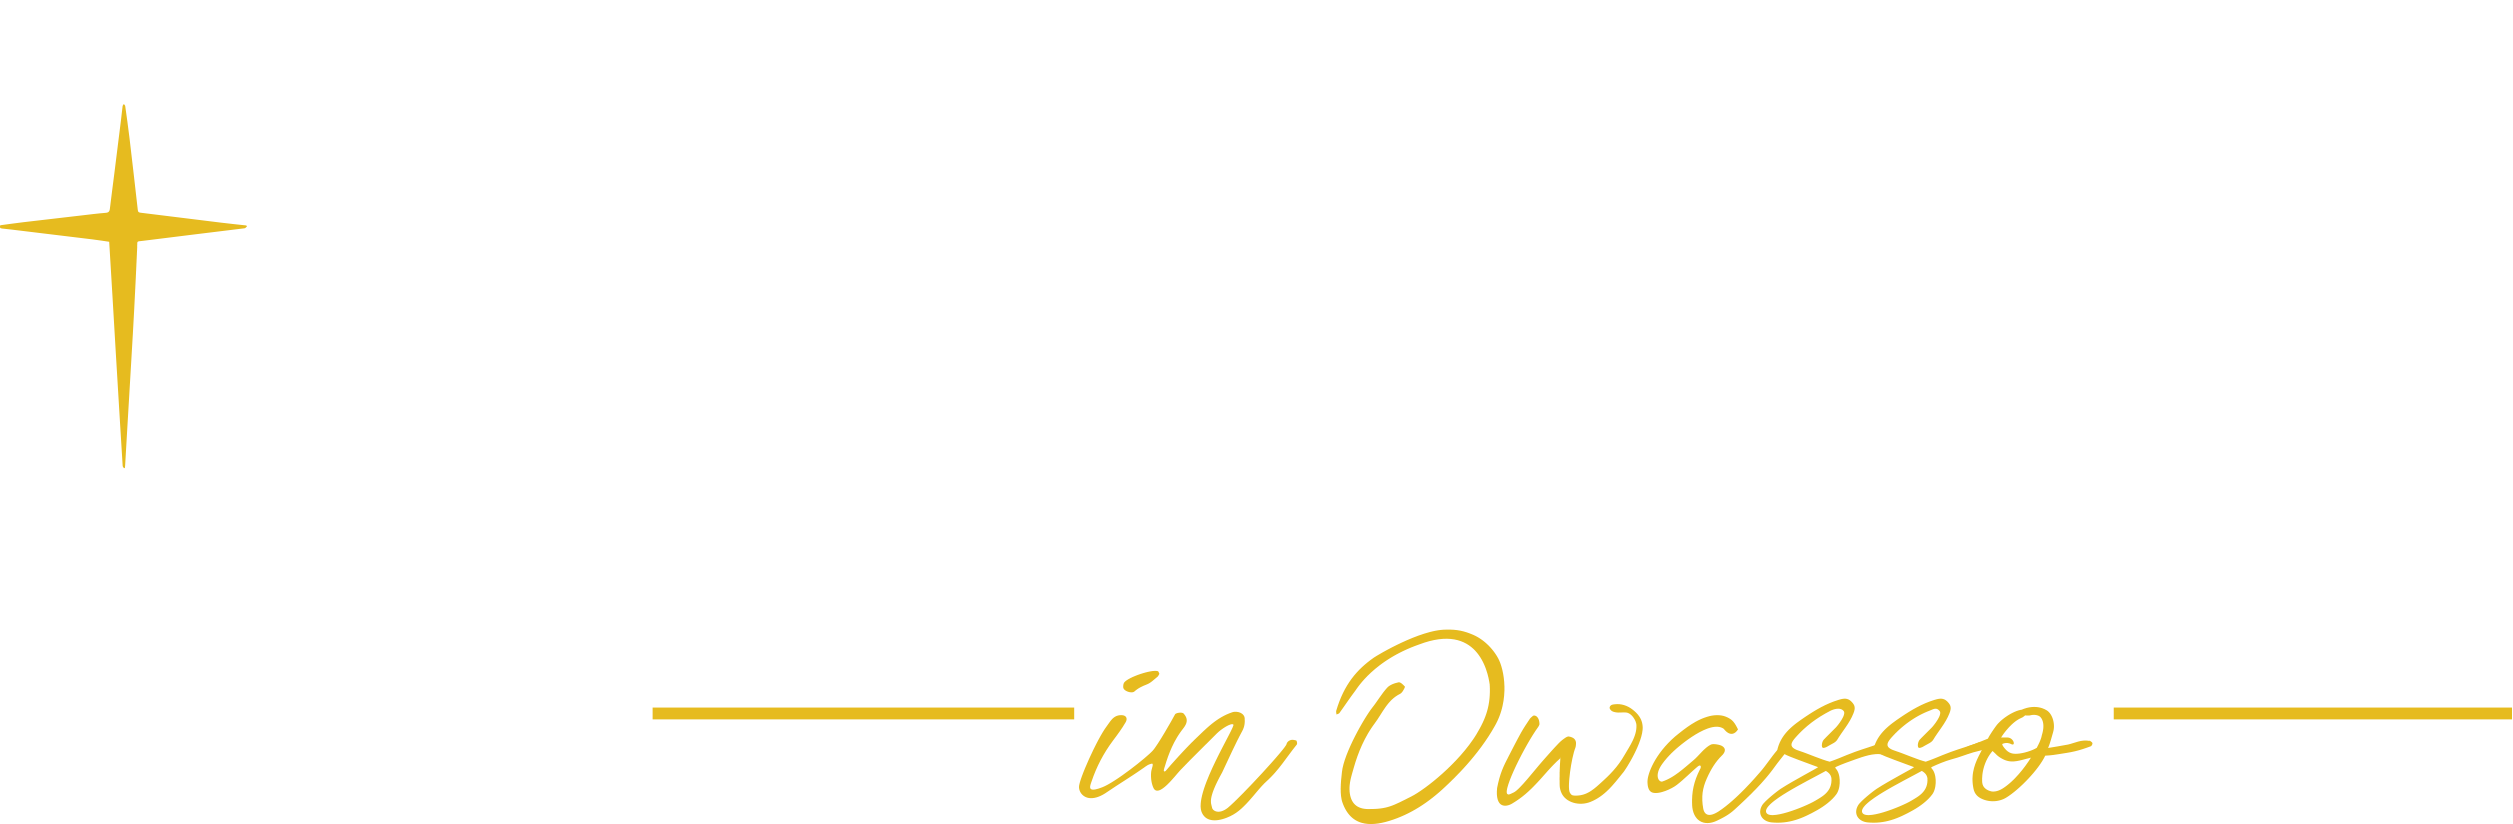 The Presence Theater Logo